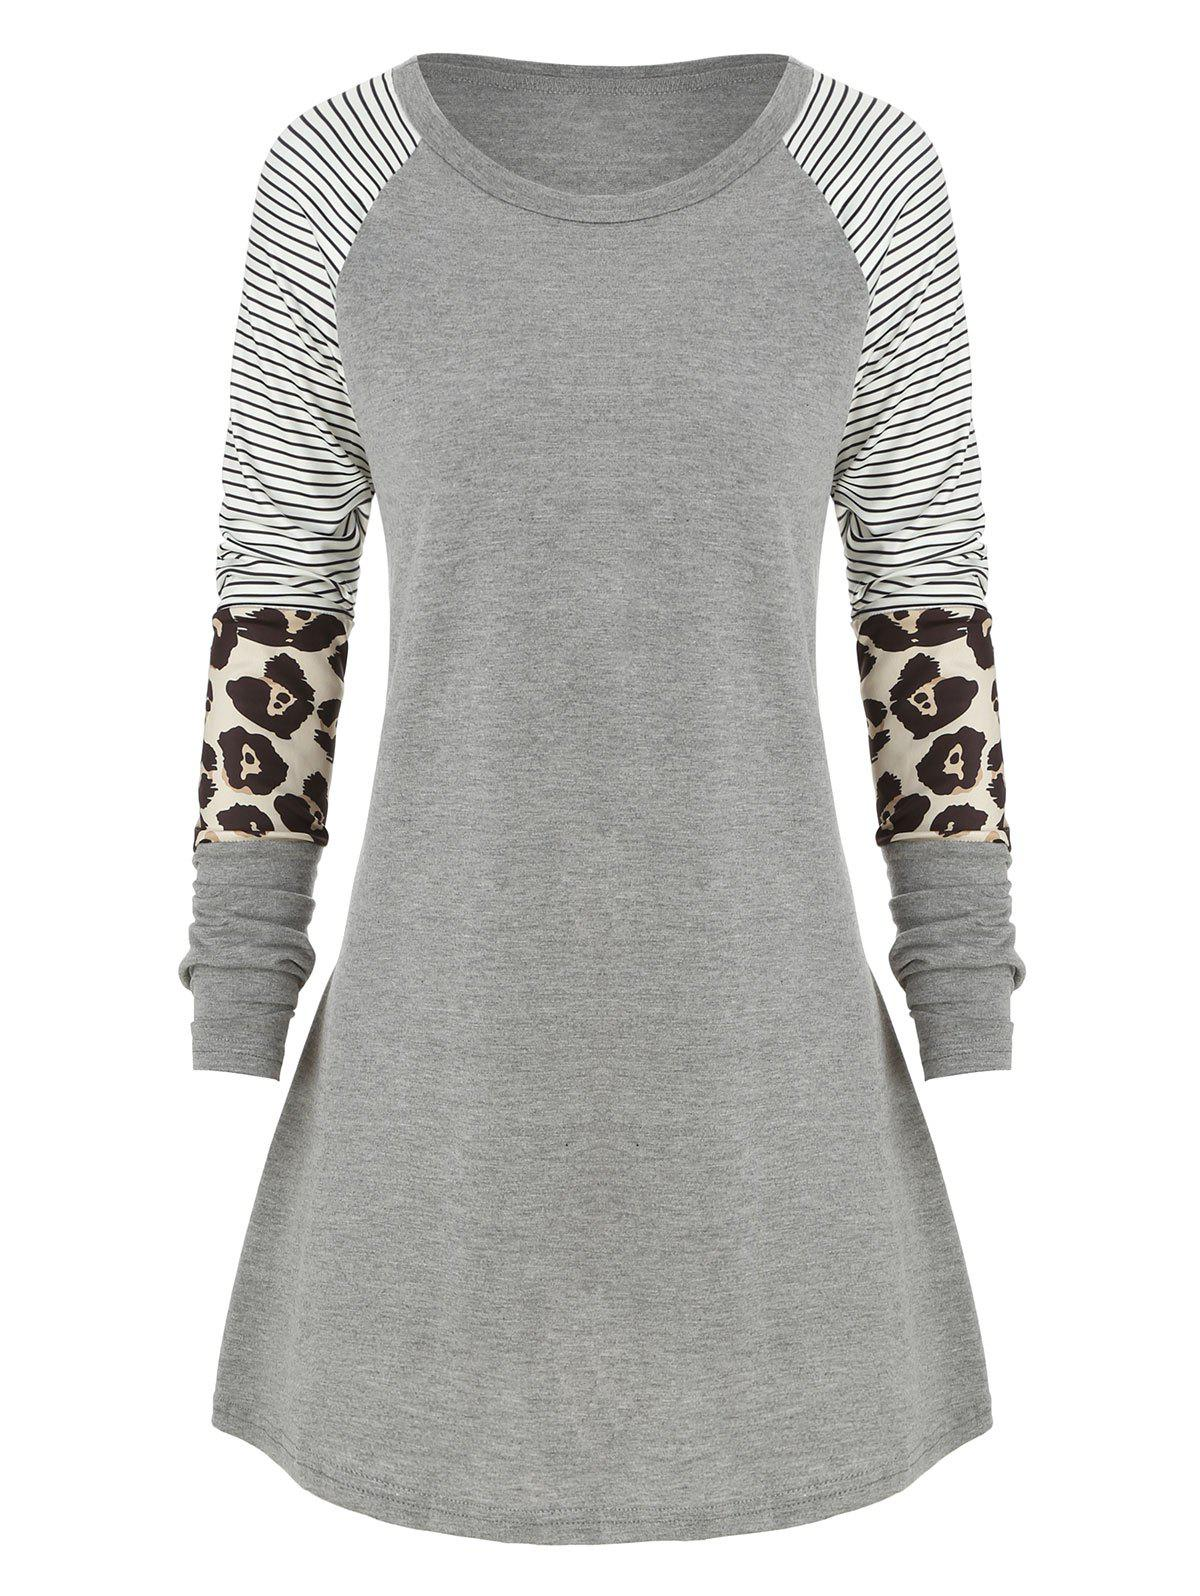 Plus Size Striped Leopard Raglan manches T